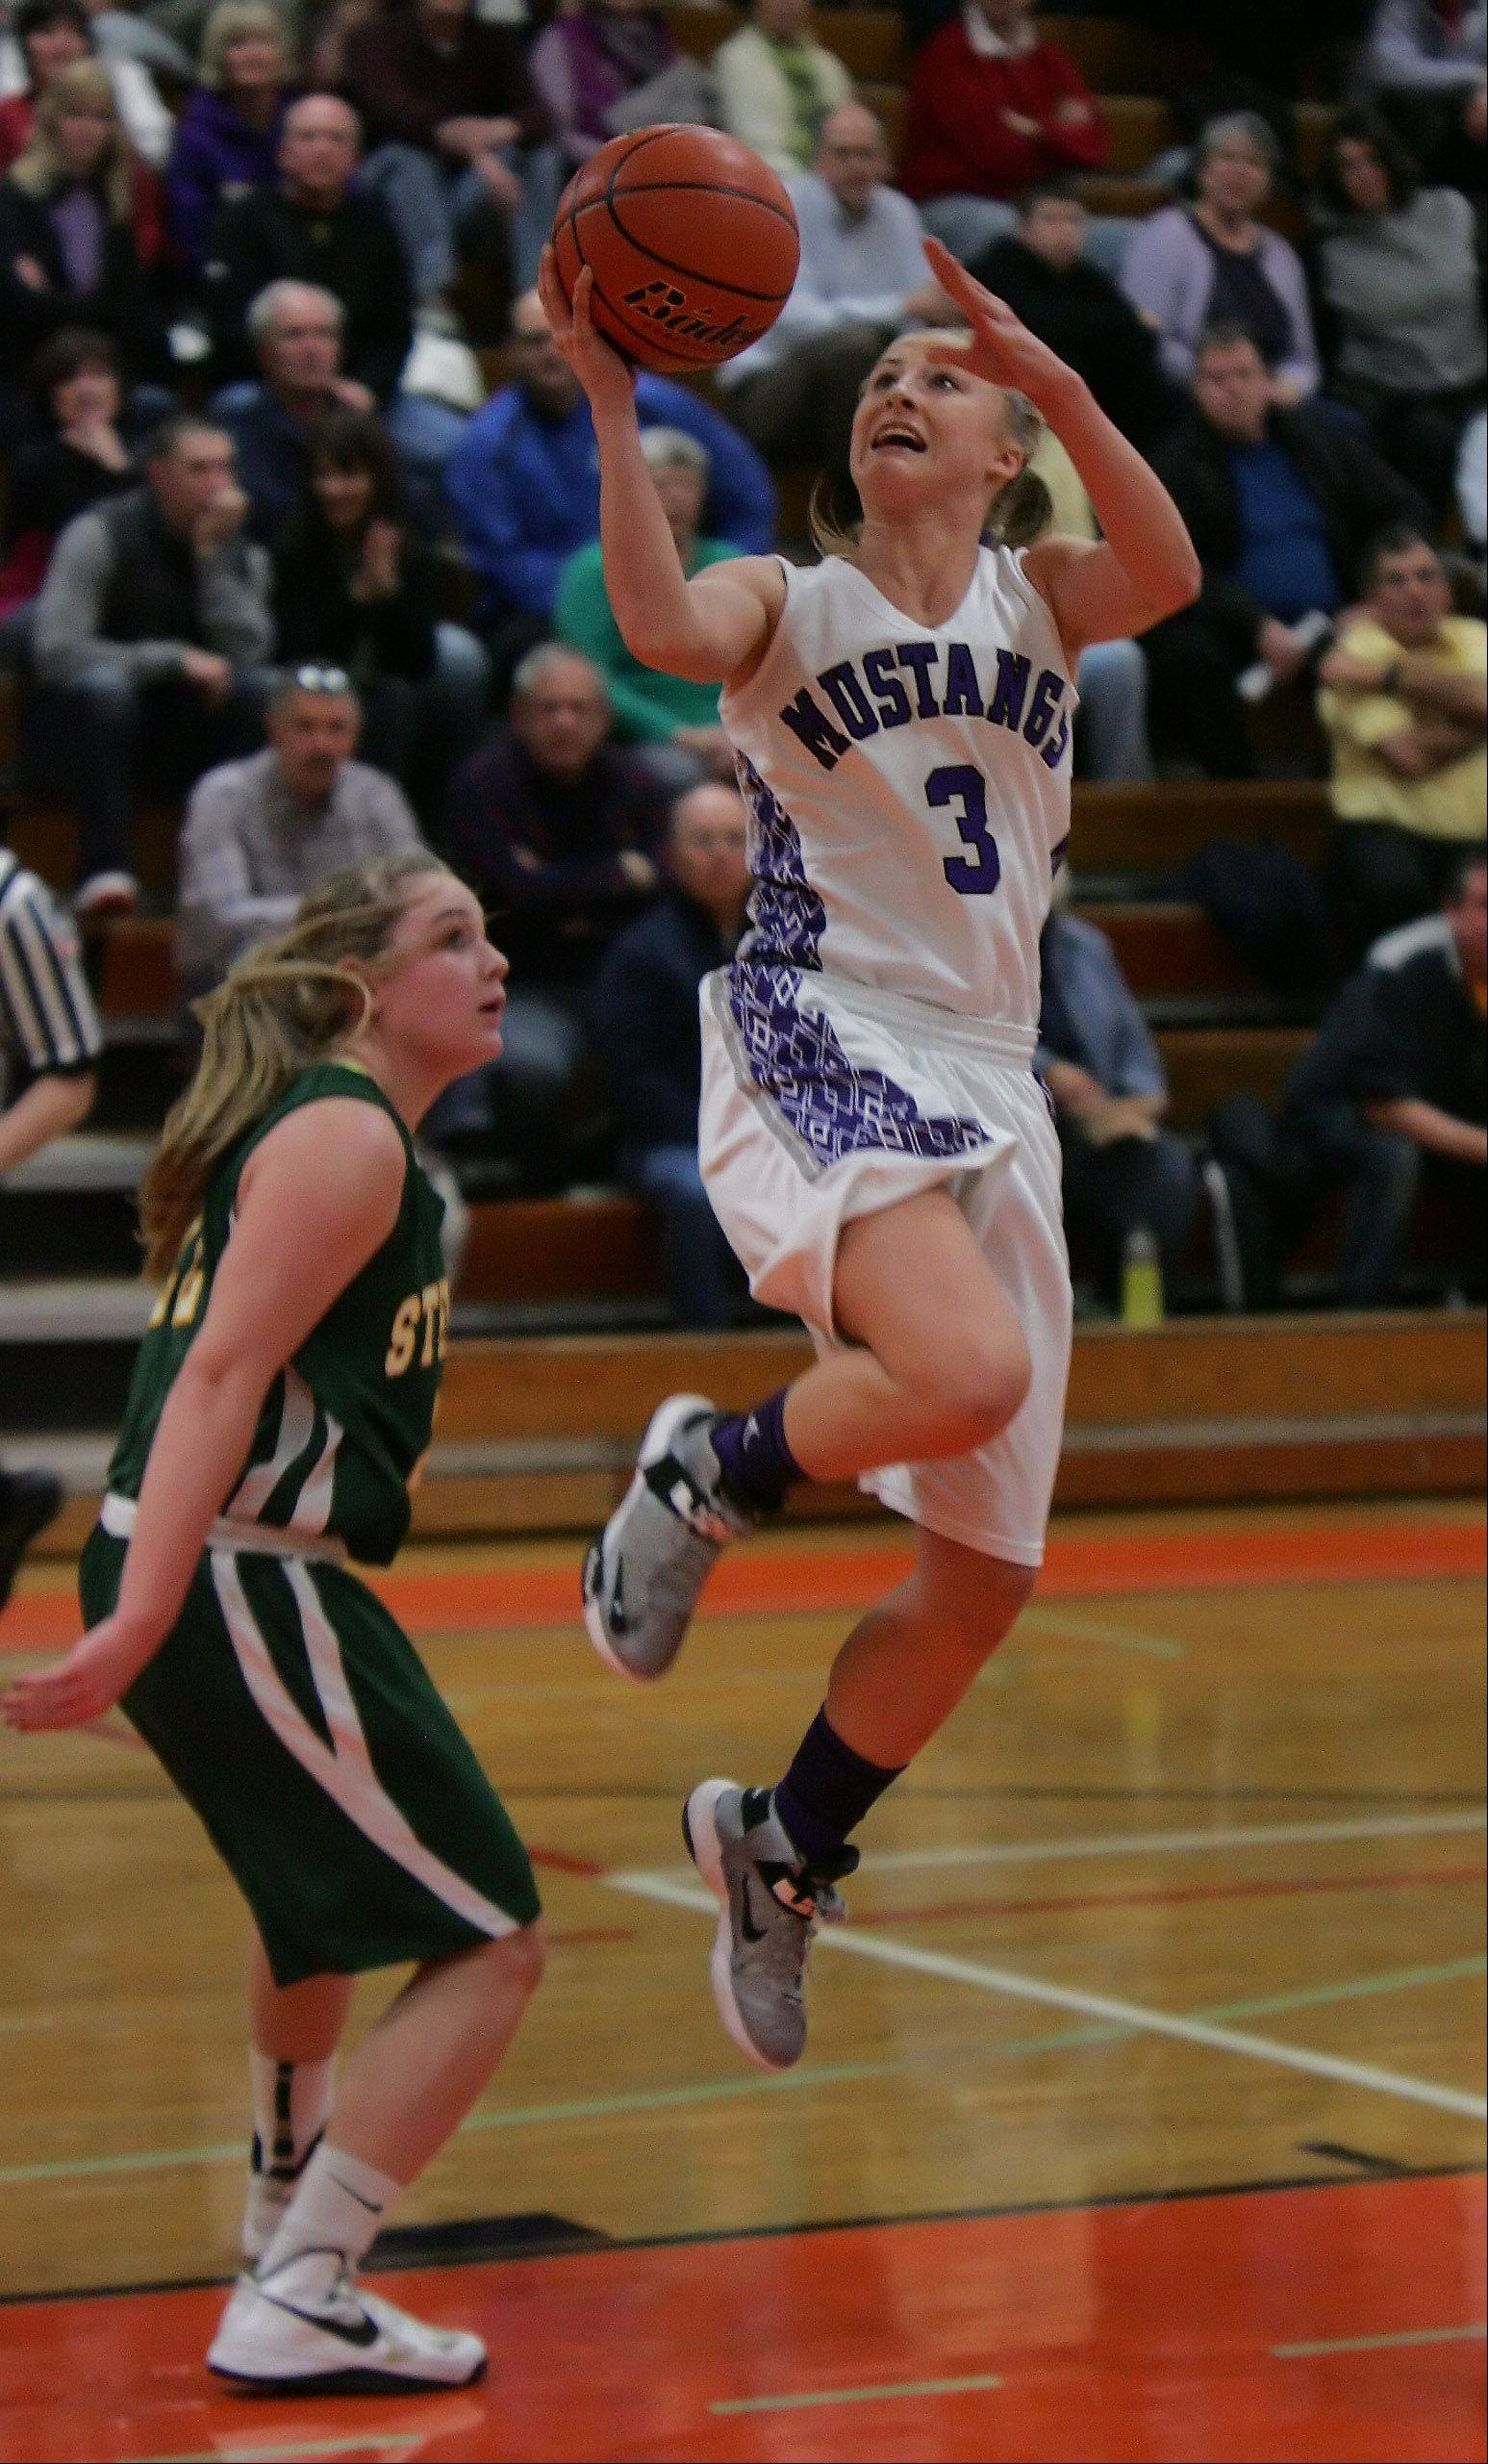 Rolling Meadows guard Jackie Kemph drives for a layup against Stevenson guard Kari Moffat during the girls basketball game between Rolling Meadows and Stevenson in the Class 4A sectional semifinals at Libertyville High School Monday. Kemph was the leading scorer in the game with 23 points.